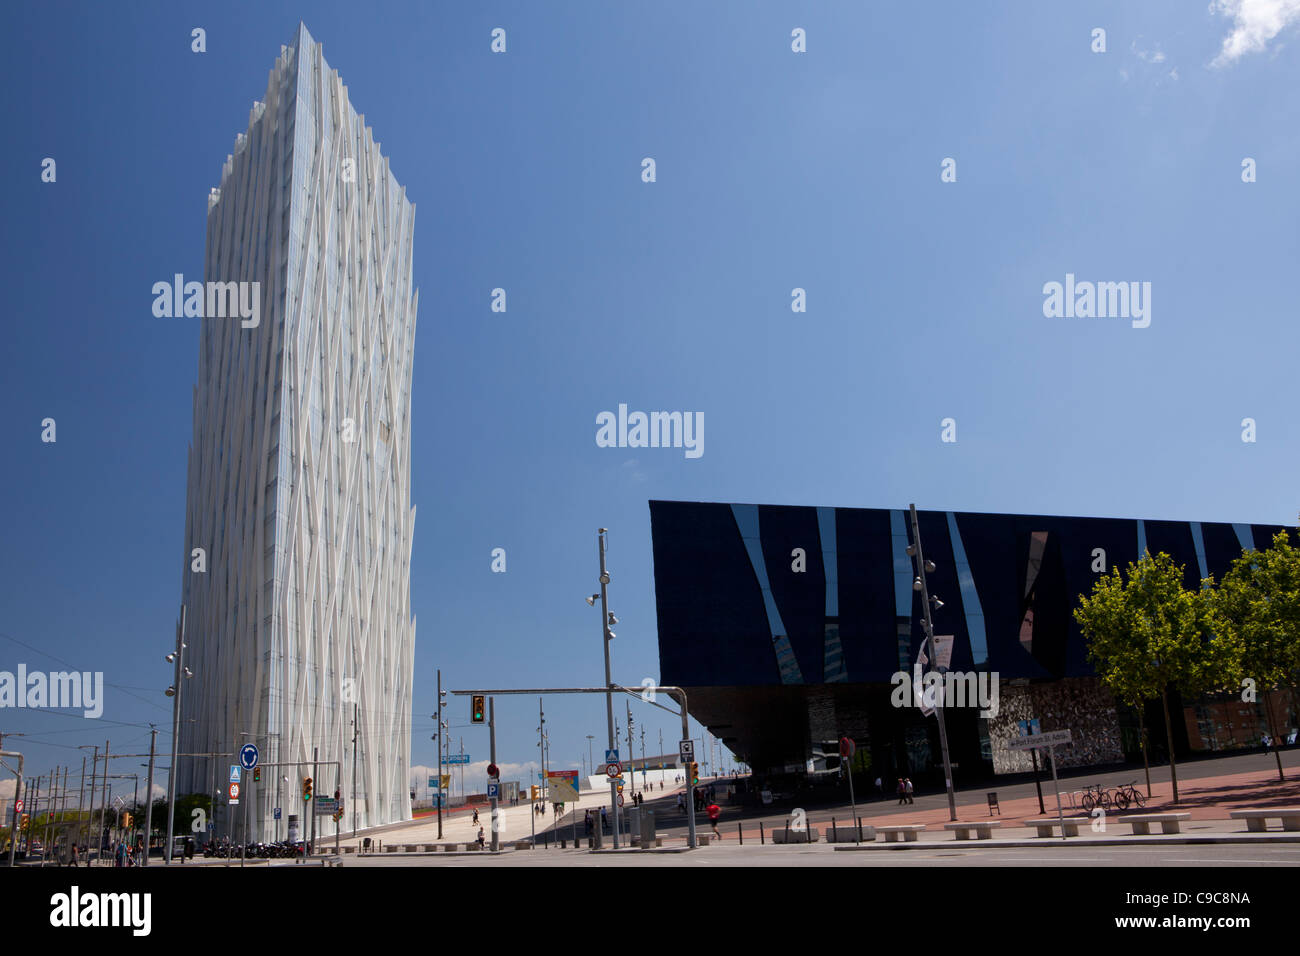 Museum of Natural Sciences of Barcelona in Fòrum building and Telefonica building, Barcelona, Spain - Stock Image